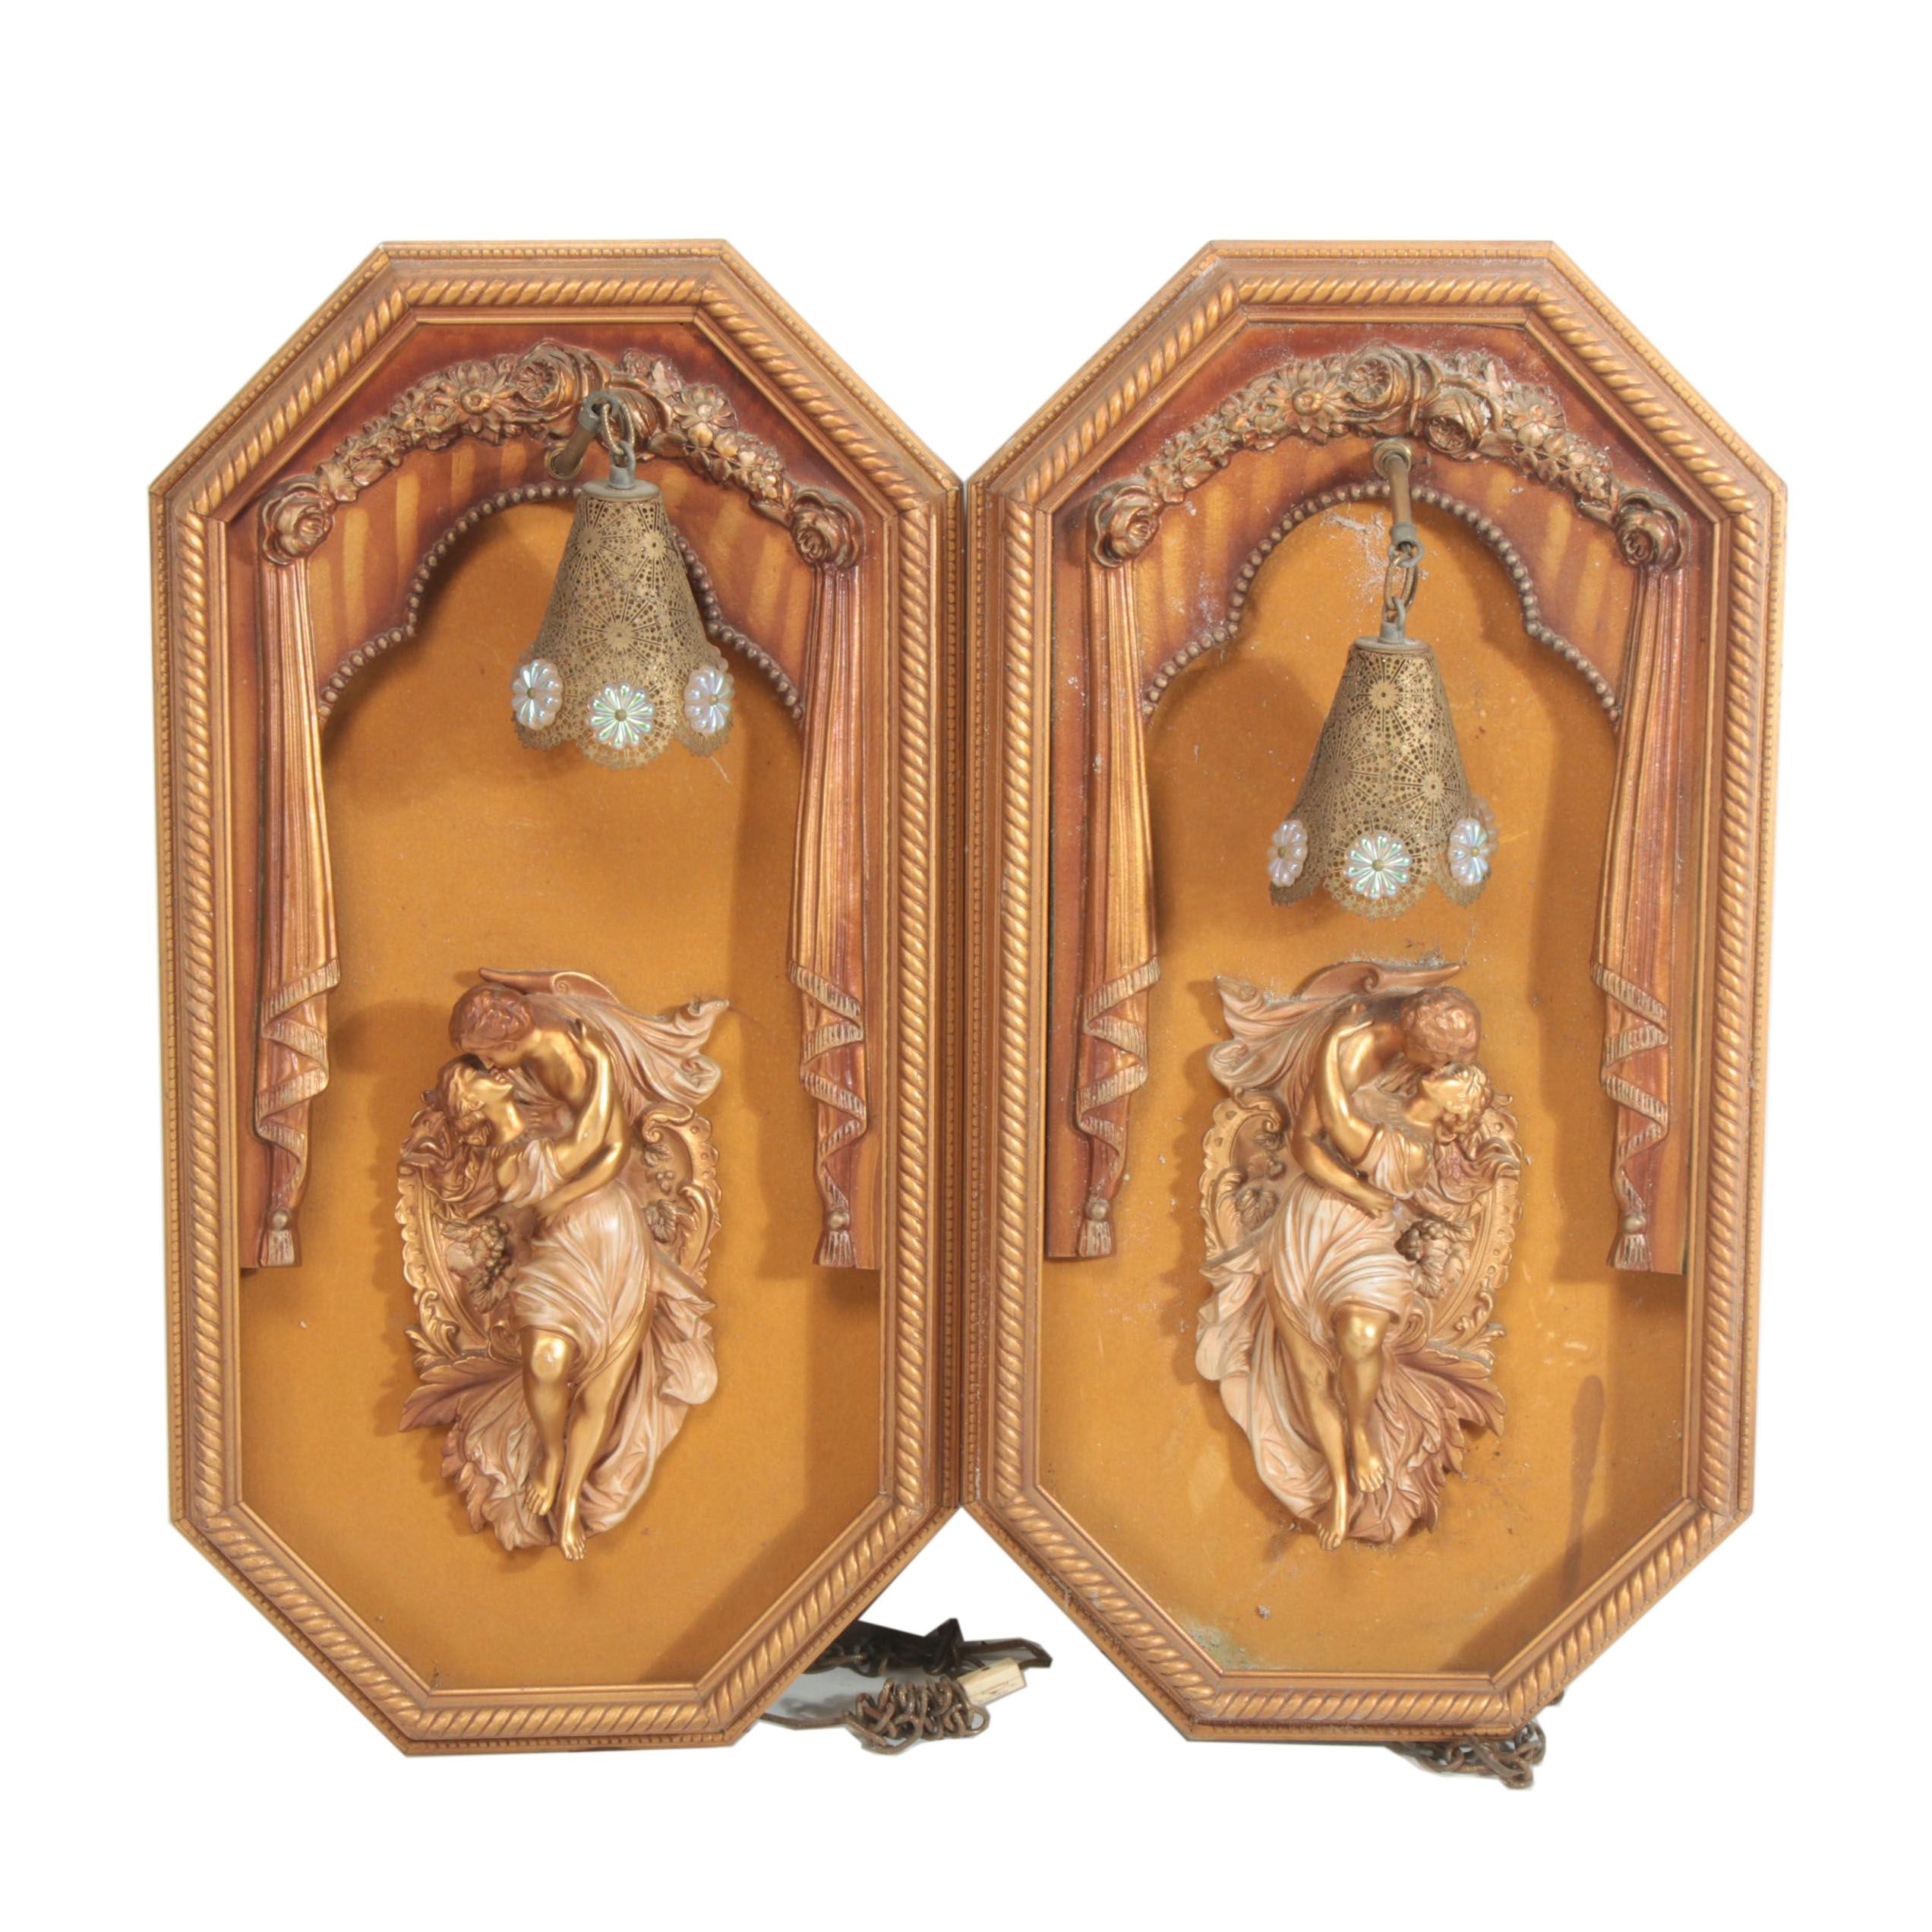 Giltwood Wall Lights with Resin Kissing Figures, Early 20th Century